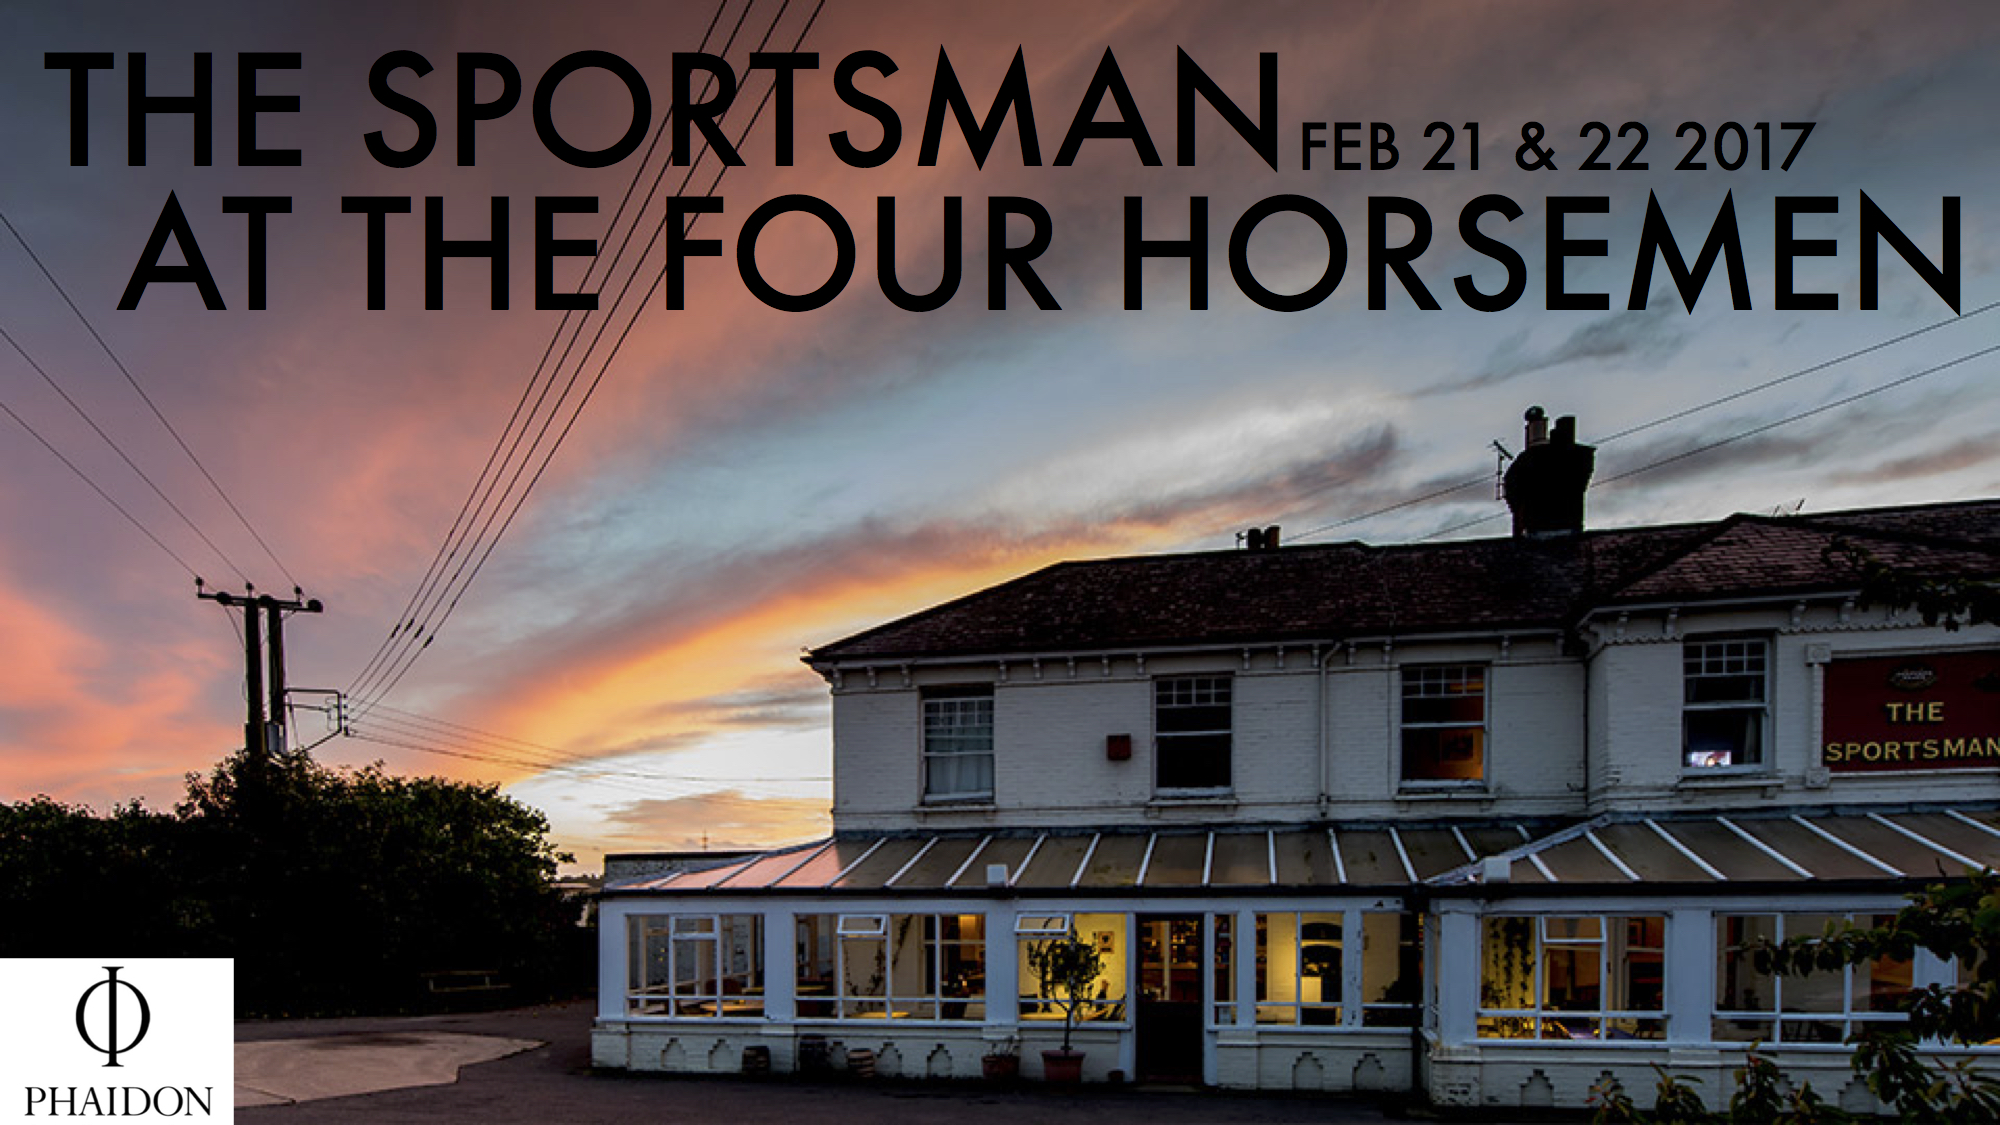 The Sportsman at The Four Horsemen.jpg